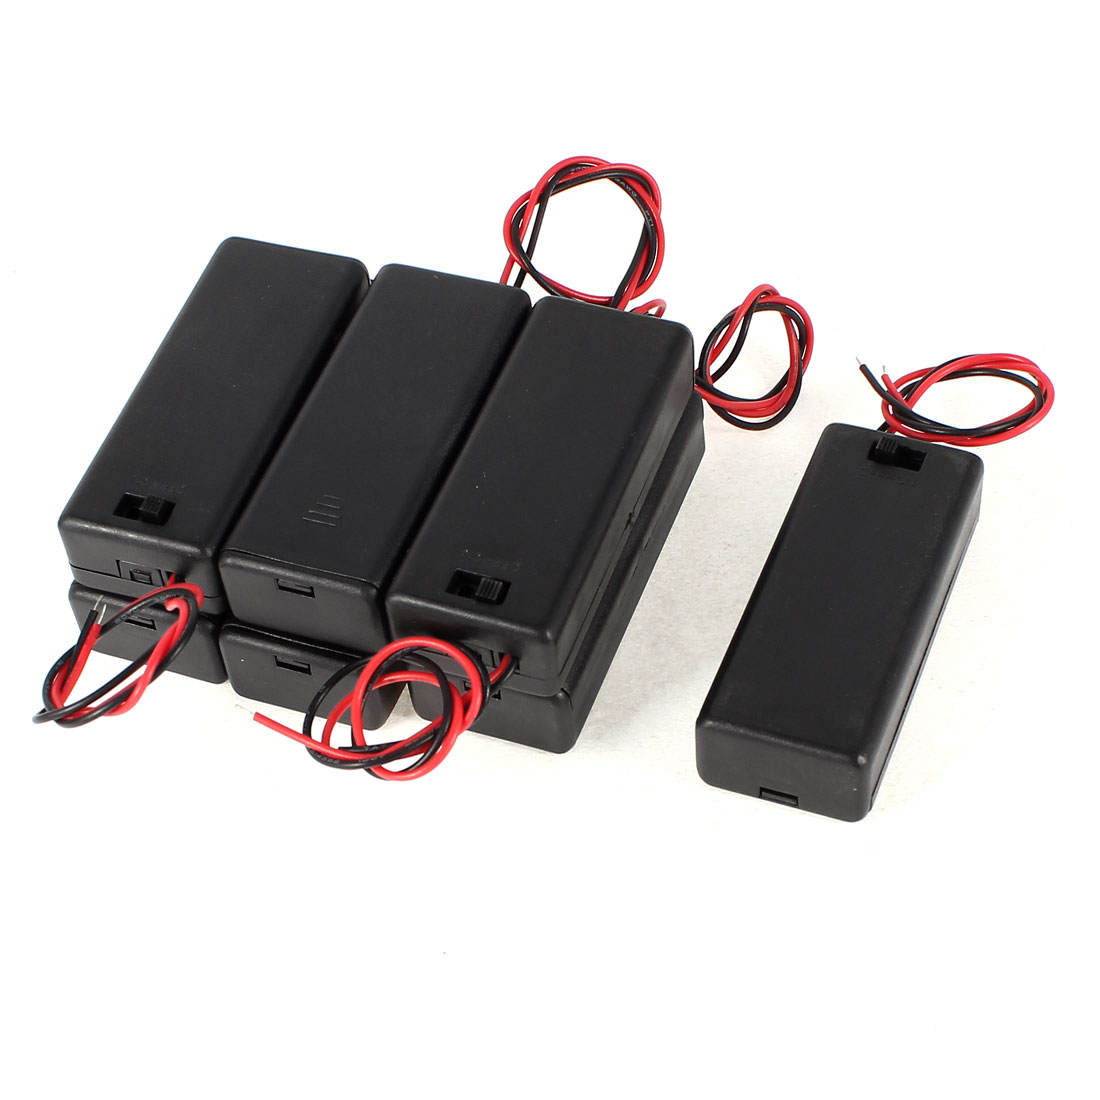 7 Pcs ON/OFF Switch Plastic Cover 2 x 1.5V AAA Battery Case Container Box Holder